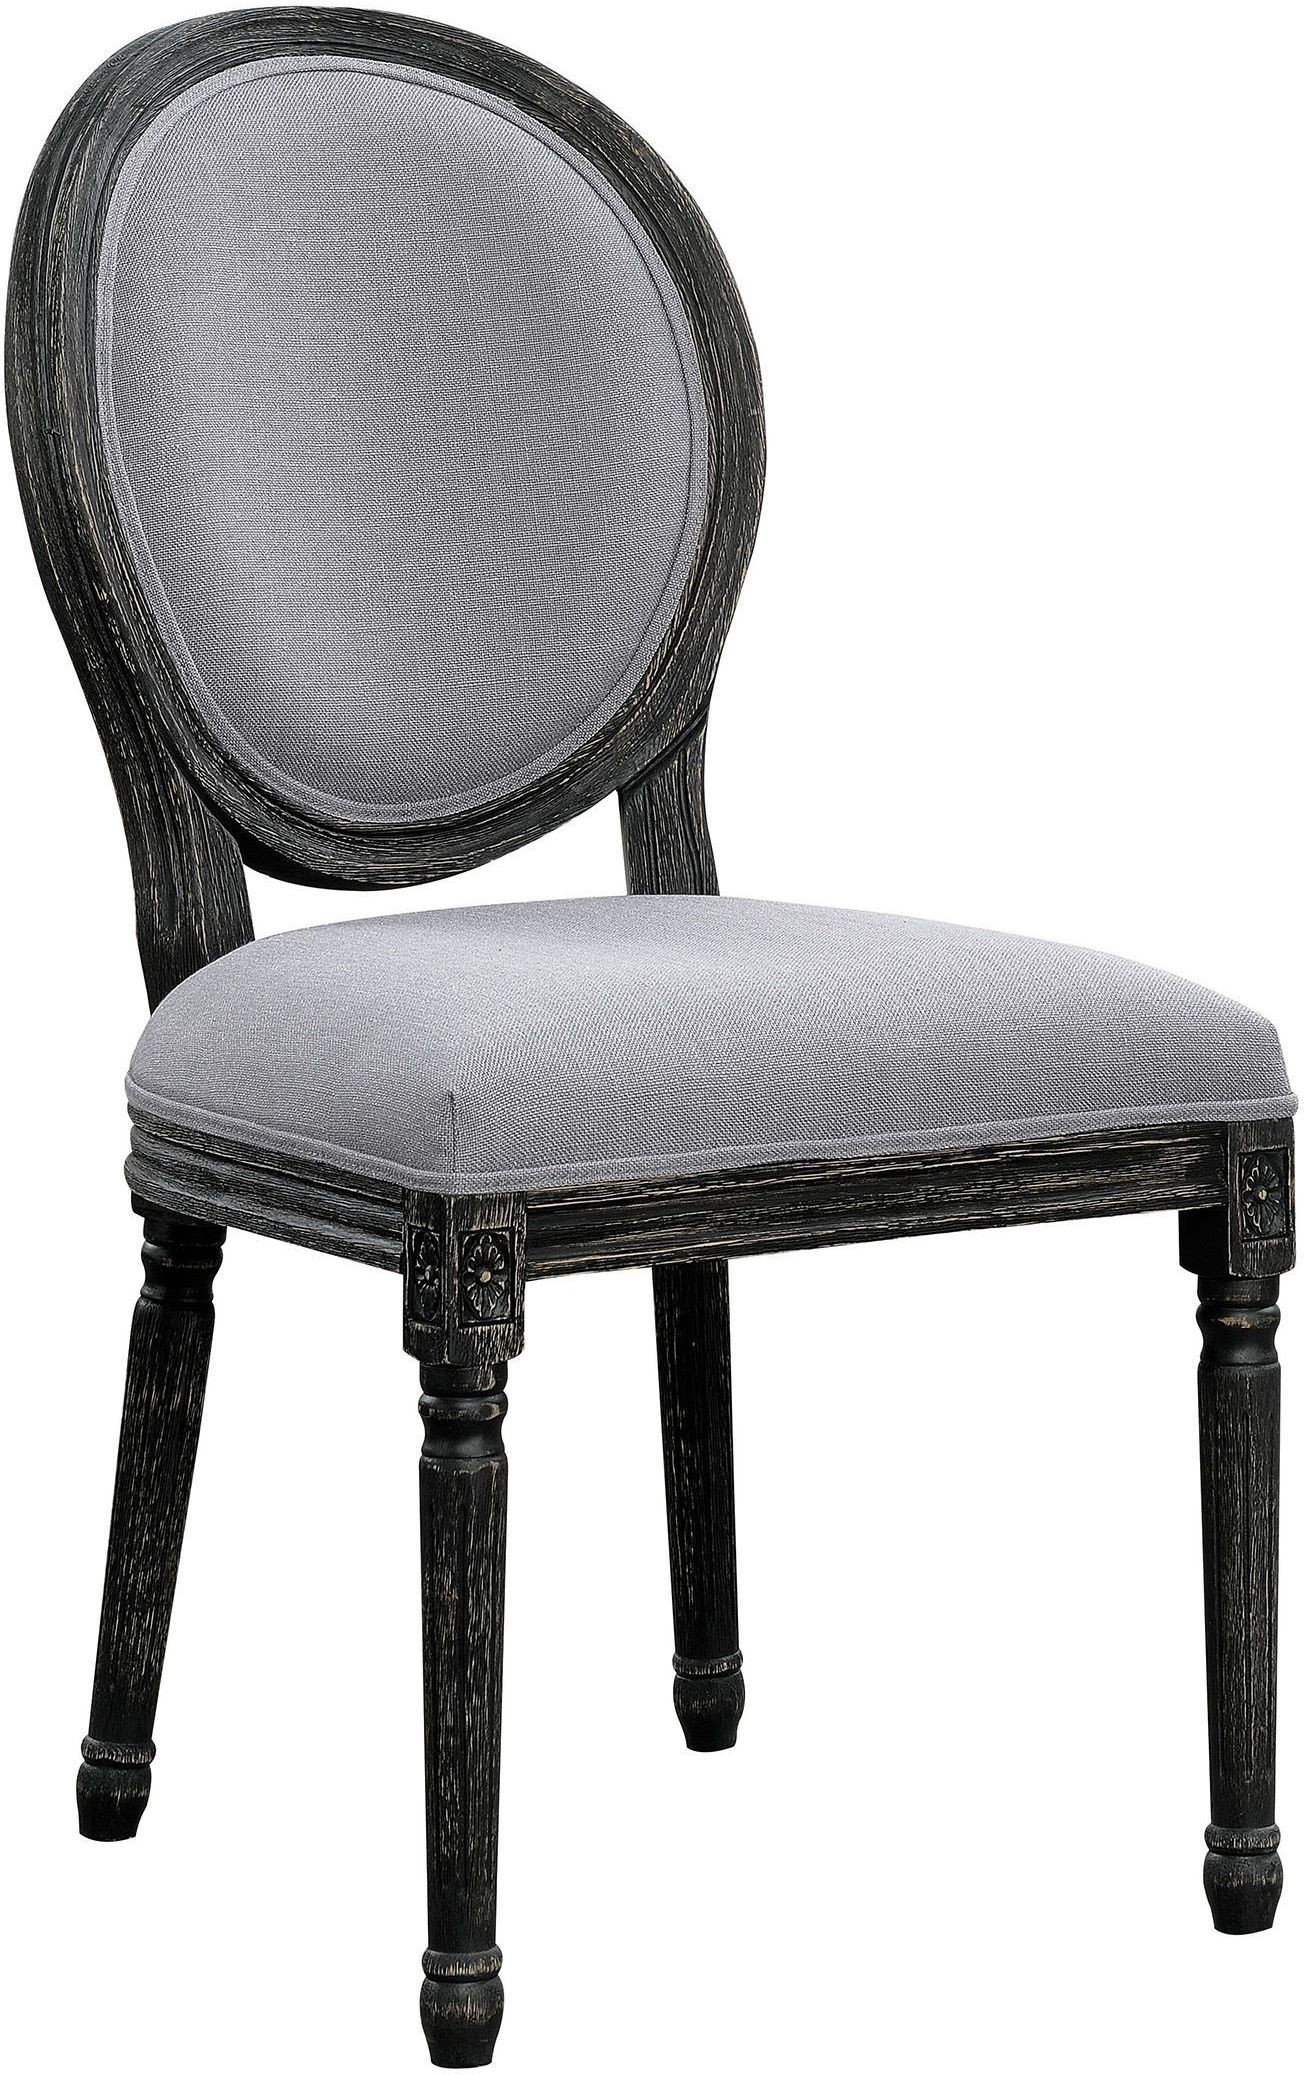 Grey Upholstered Chair Grey Upholstered Dining Chair Set Of 2 By Scott Living